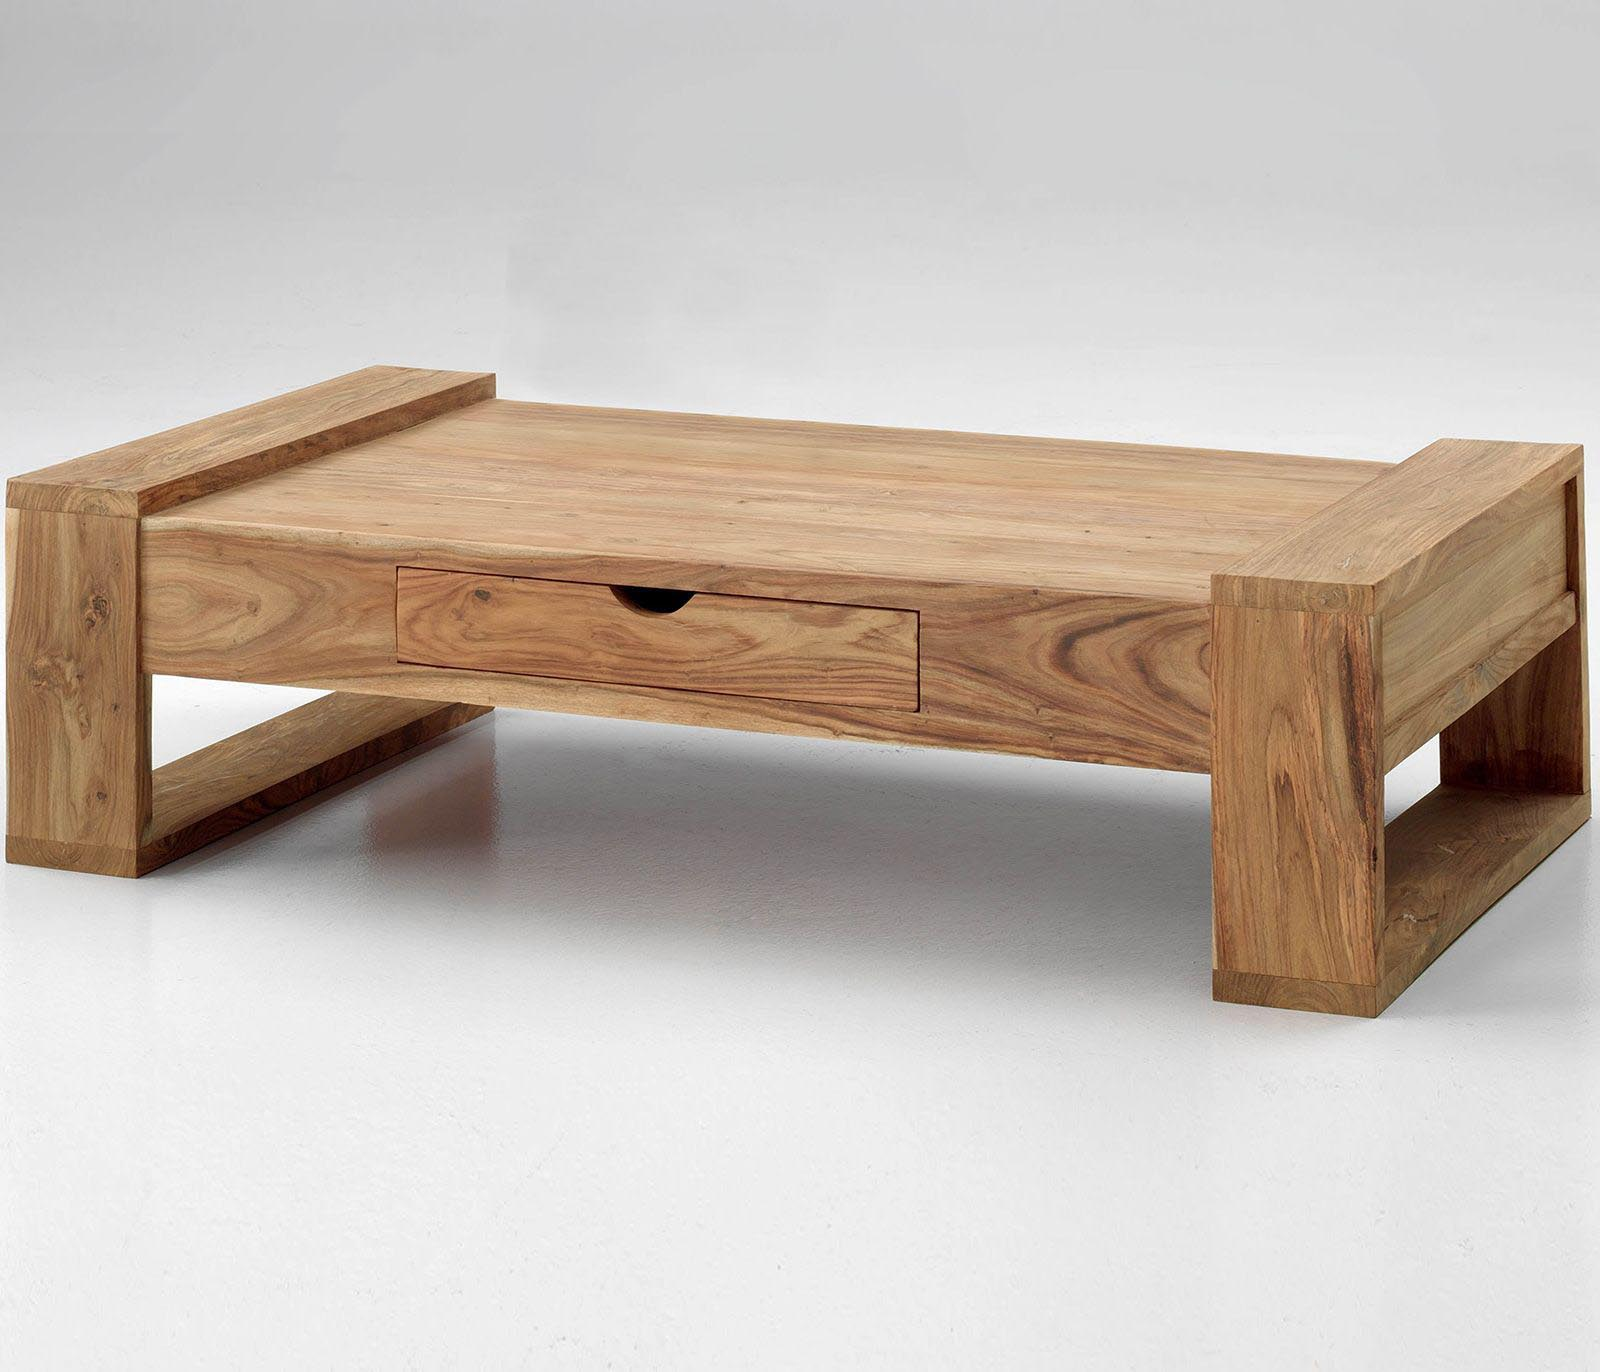 Low coffee table wood coffee table design ideas low coffee table wood geotapseo Image collections